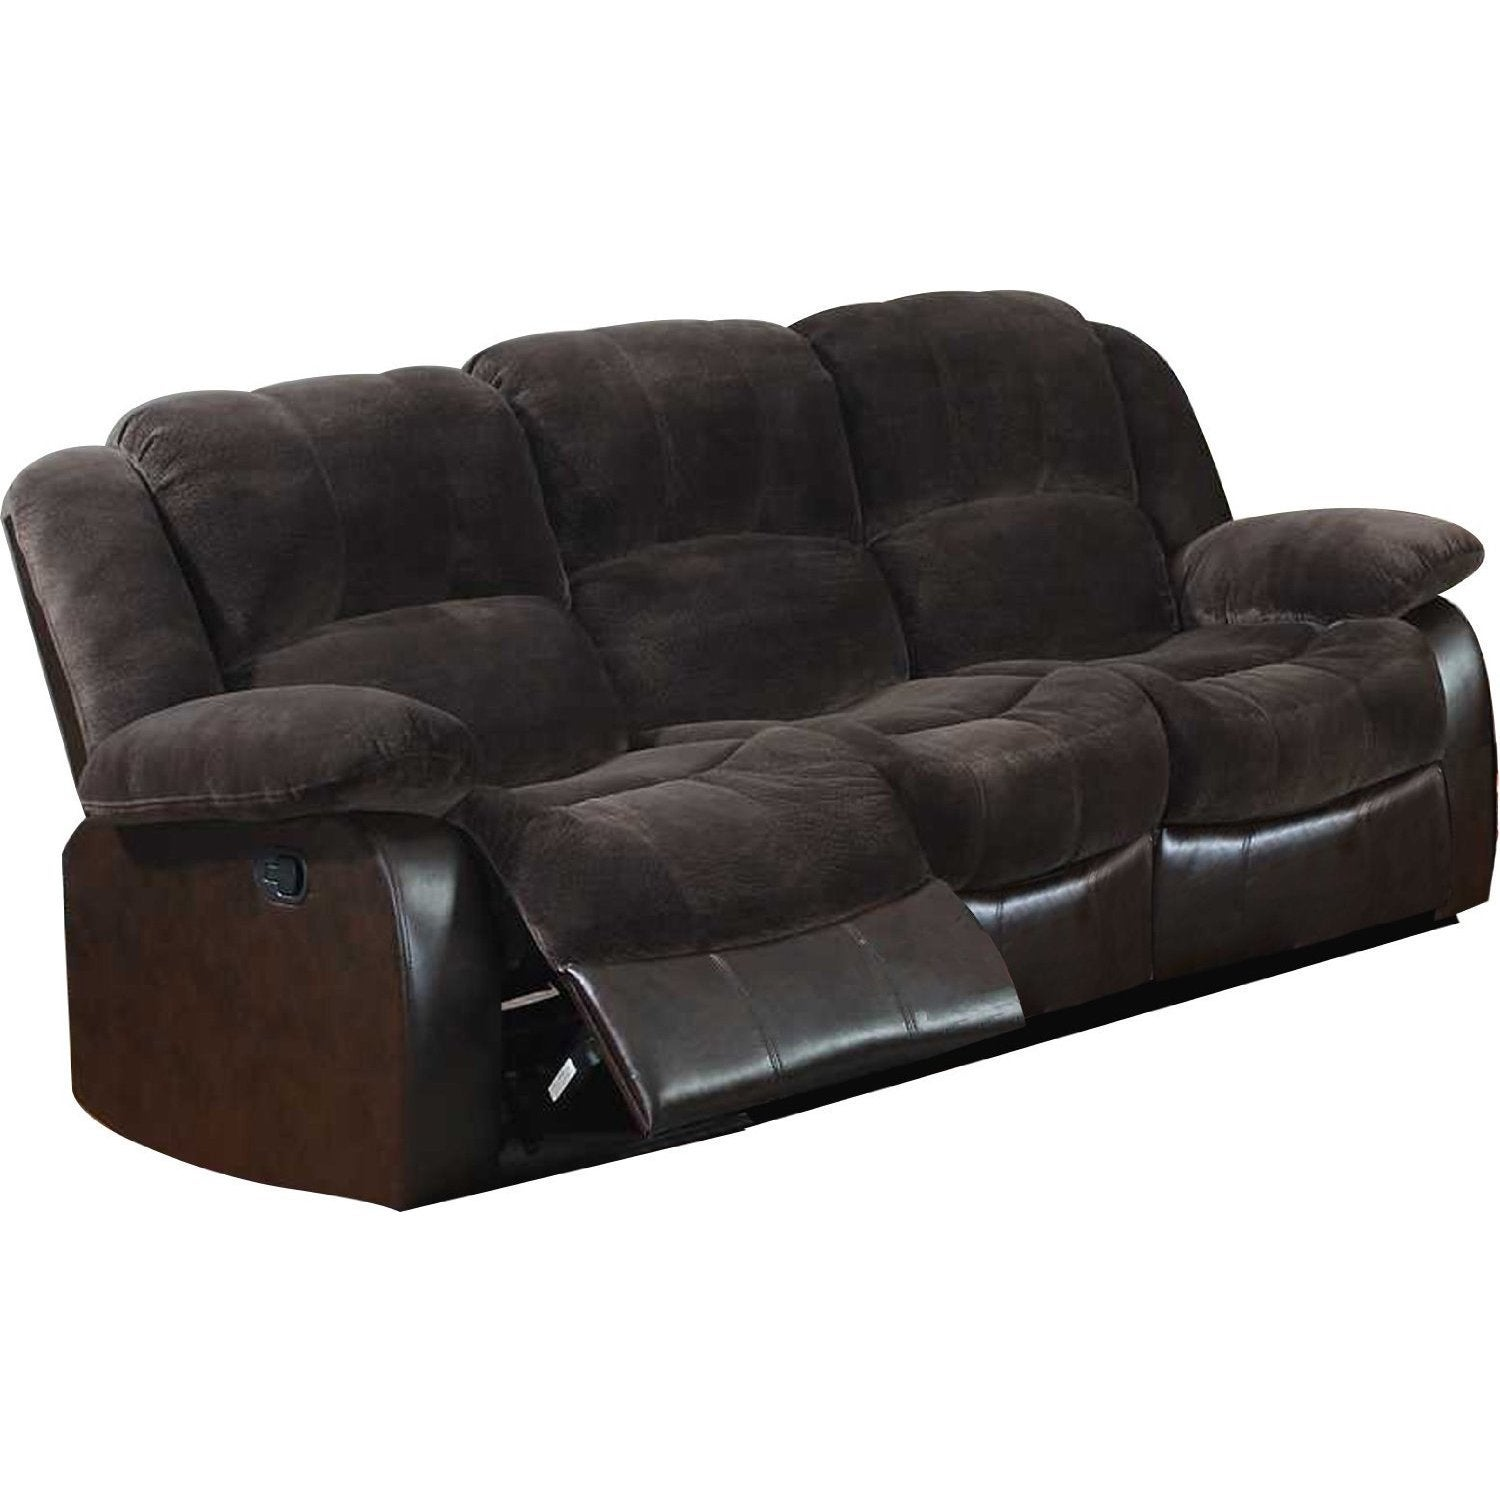 Polyurethane Sofa with 2 Reclining Seats in Dark Brown (C...